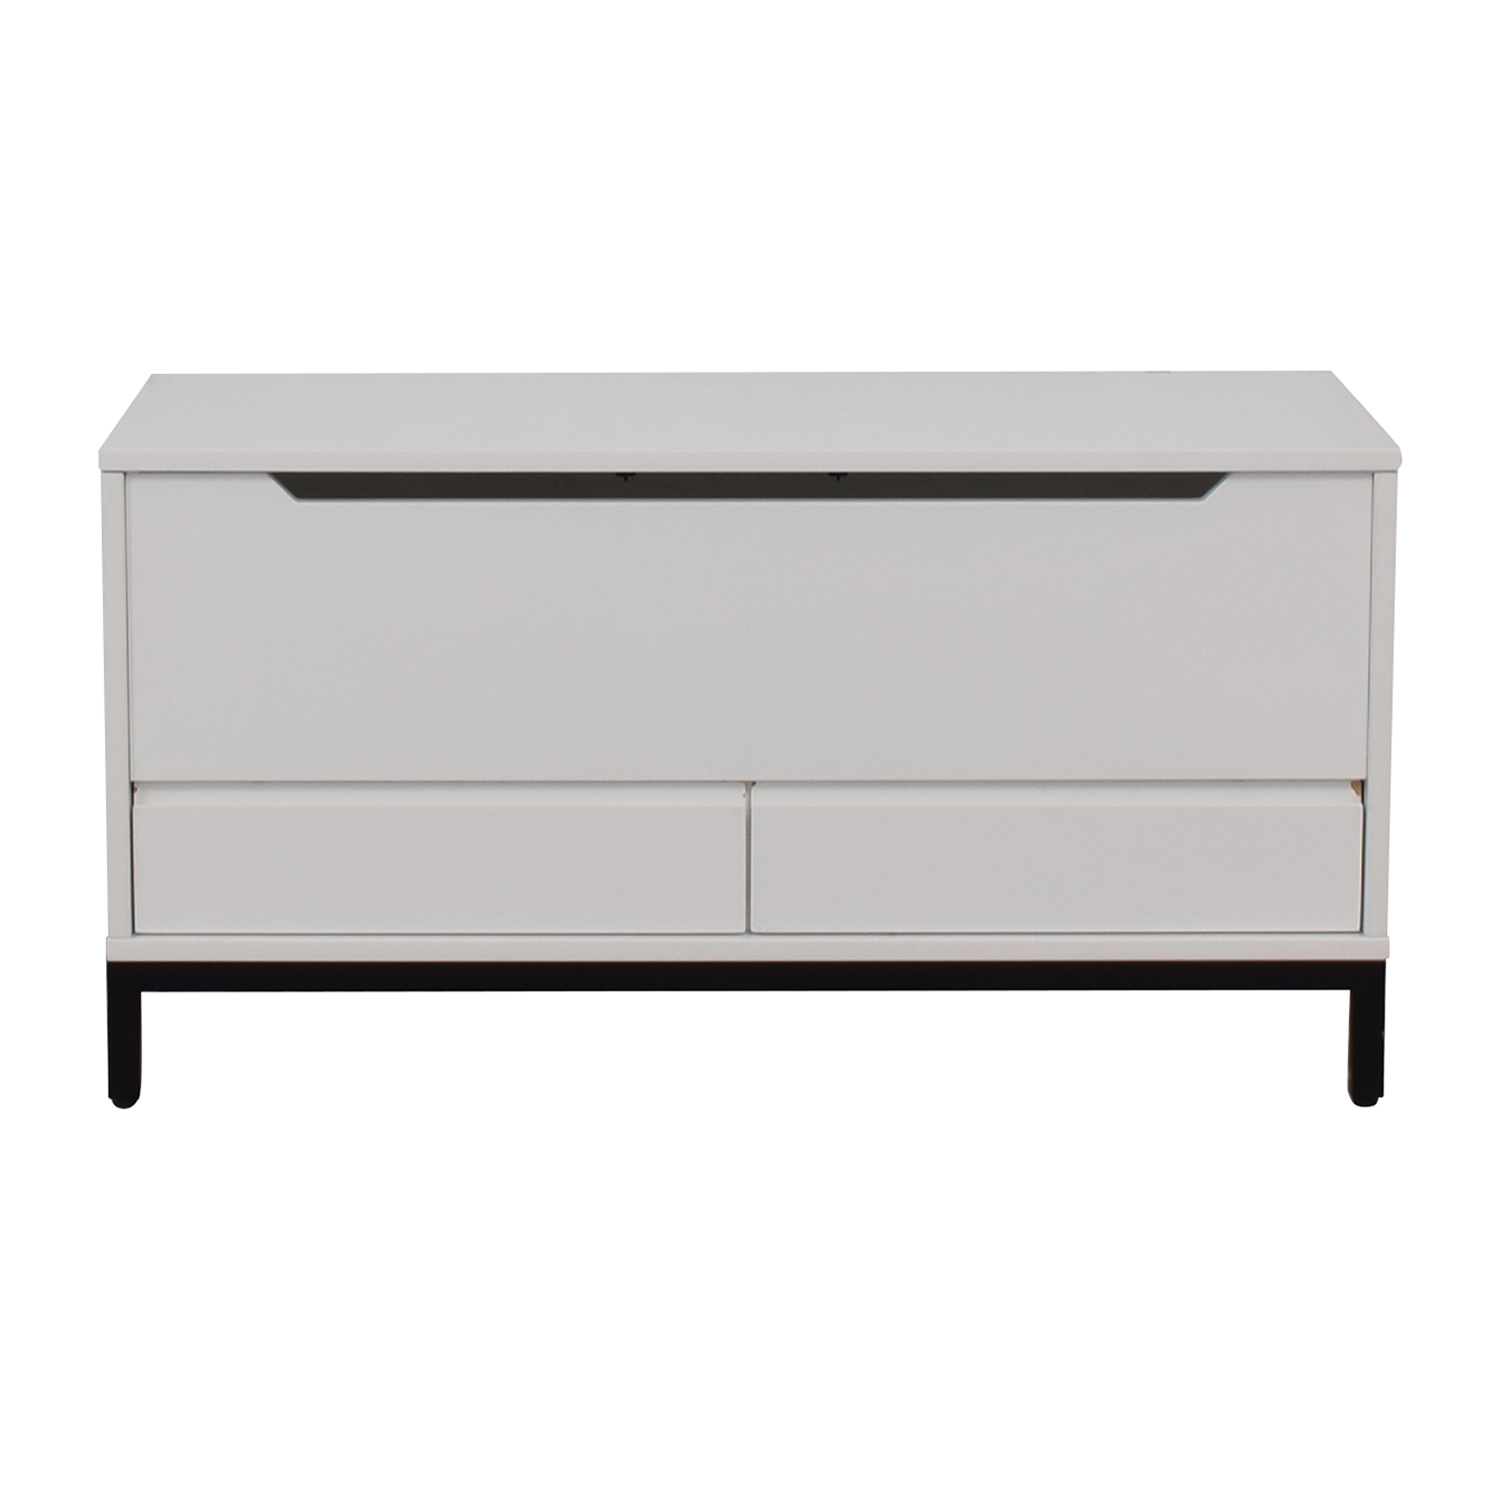 Land of Nod Land of Nod White Two-Drawer Storage Bench for sale